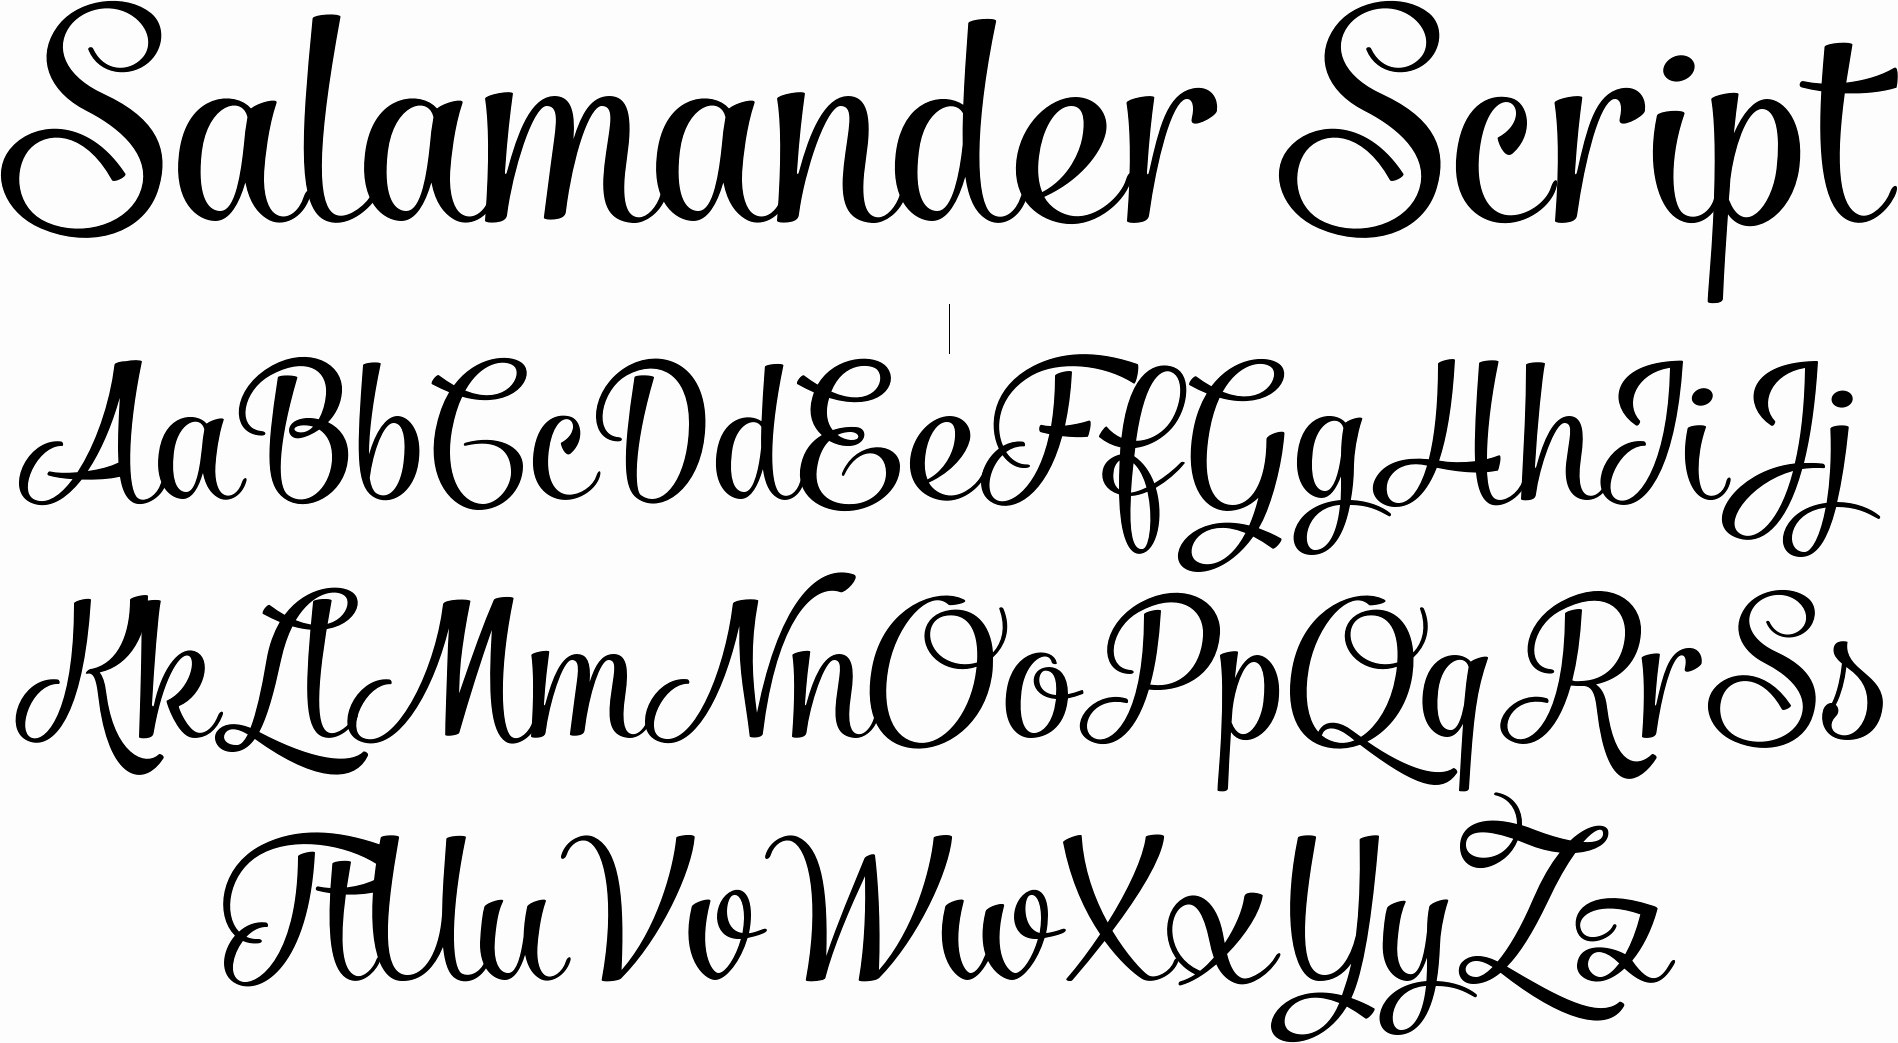 Free Cursive Handwriting Fonts Luxury Script Fonts